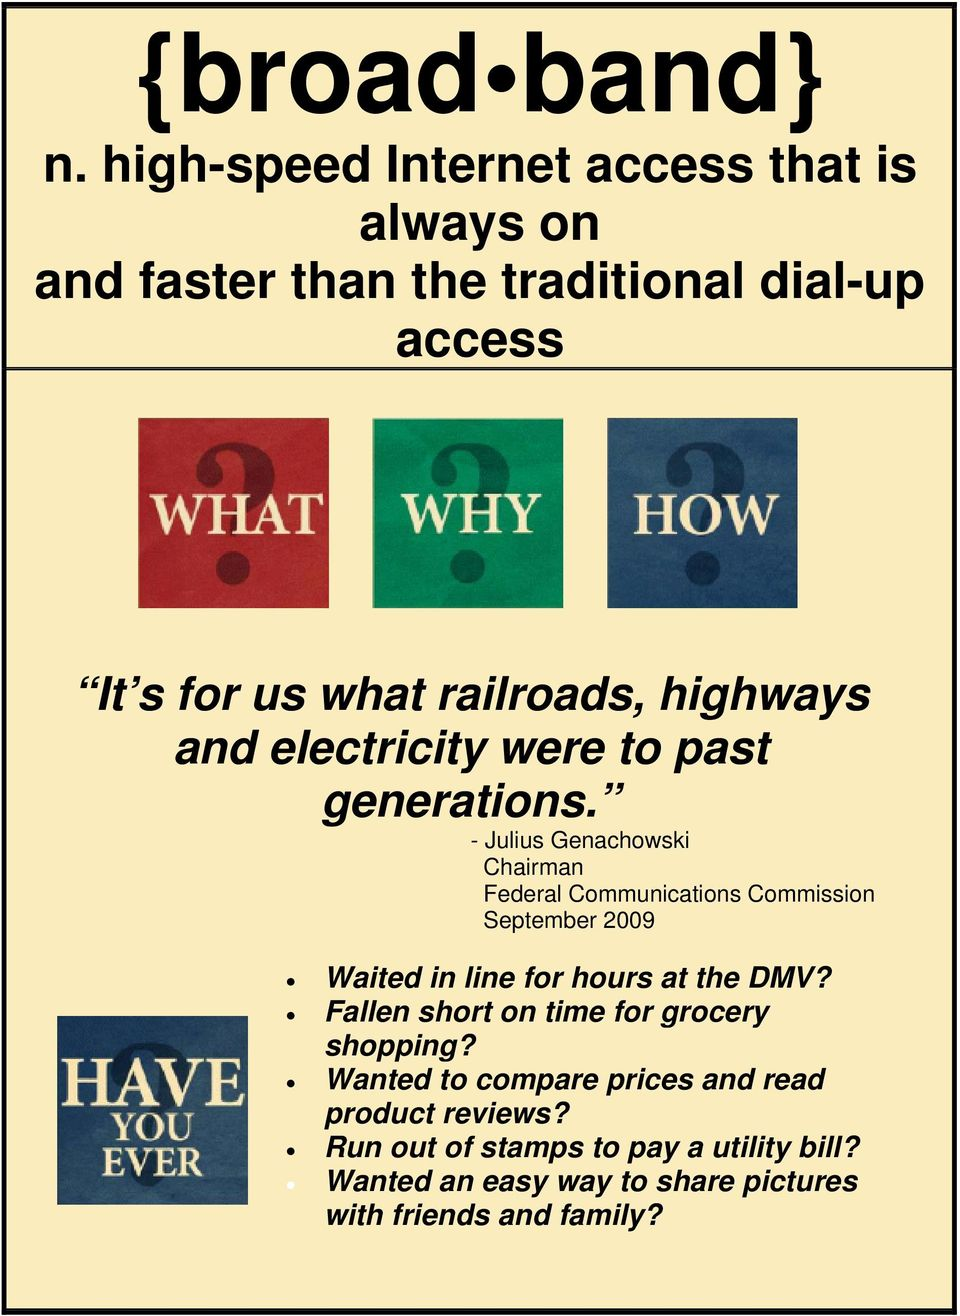 highways and electricity were to past generations.